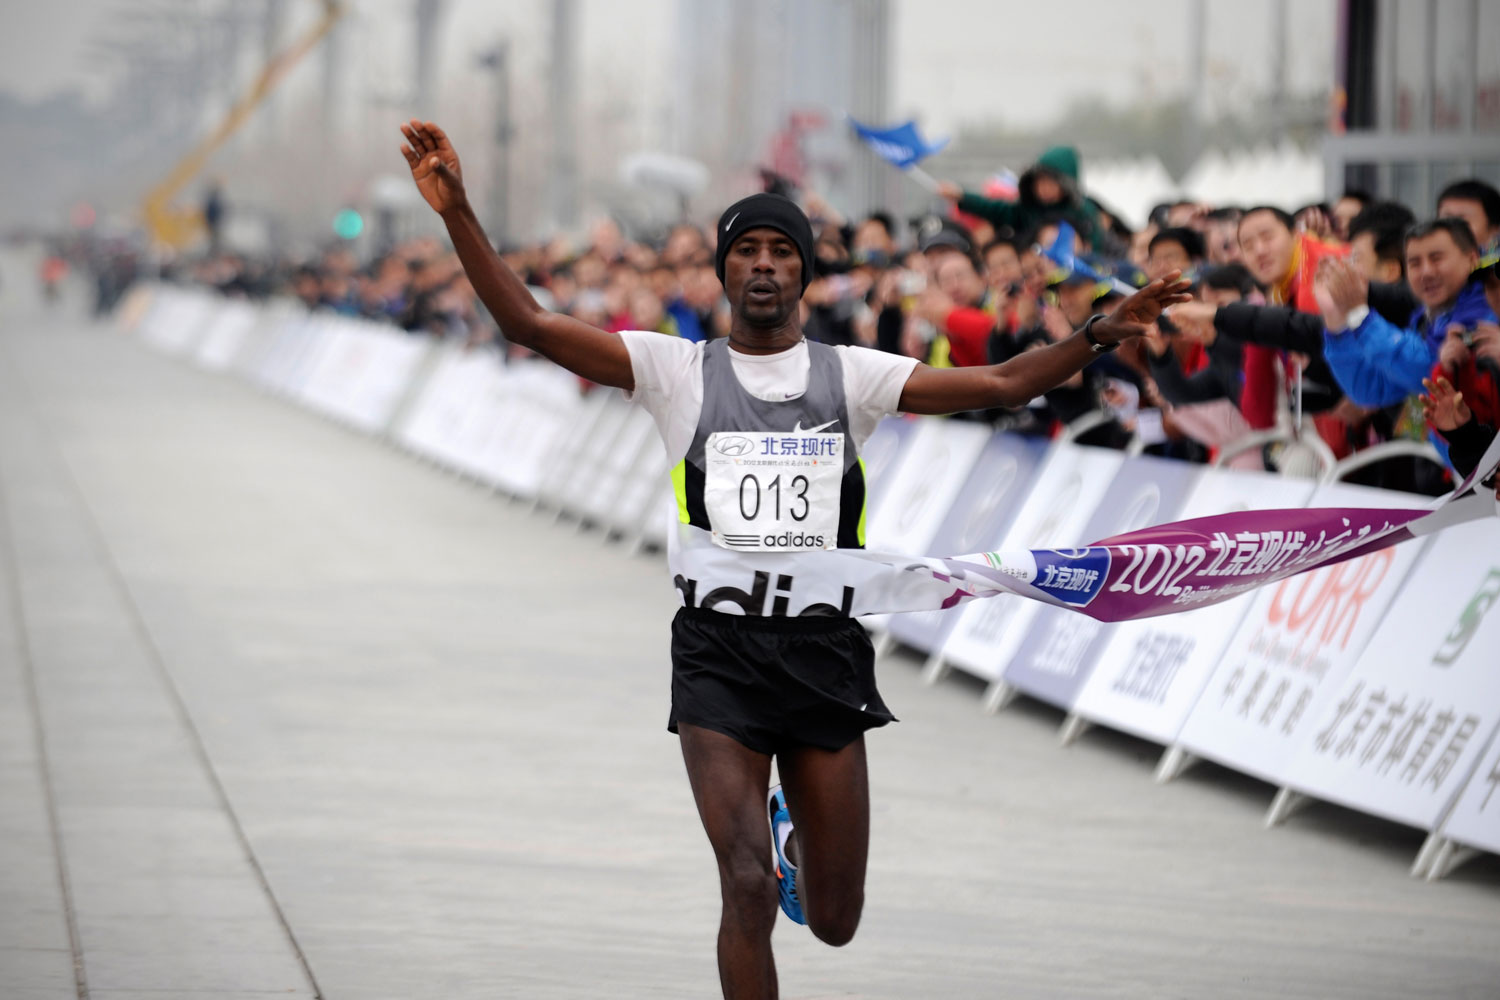 Ethiopia's Tariku Jufar Robi crosses the finish line to win the men's portion of the Beijing Marathon in November 2012. A total of 30,000 runners took part in the race.